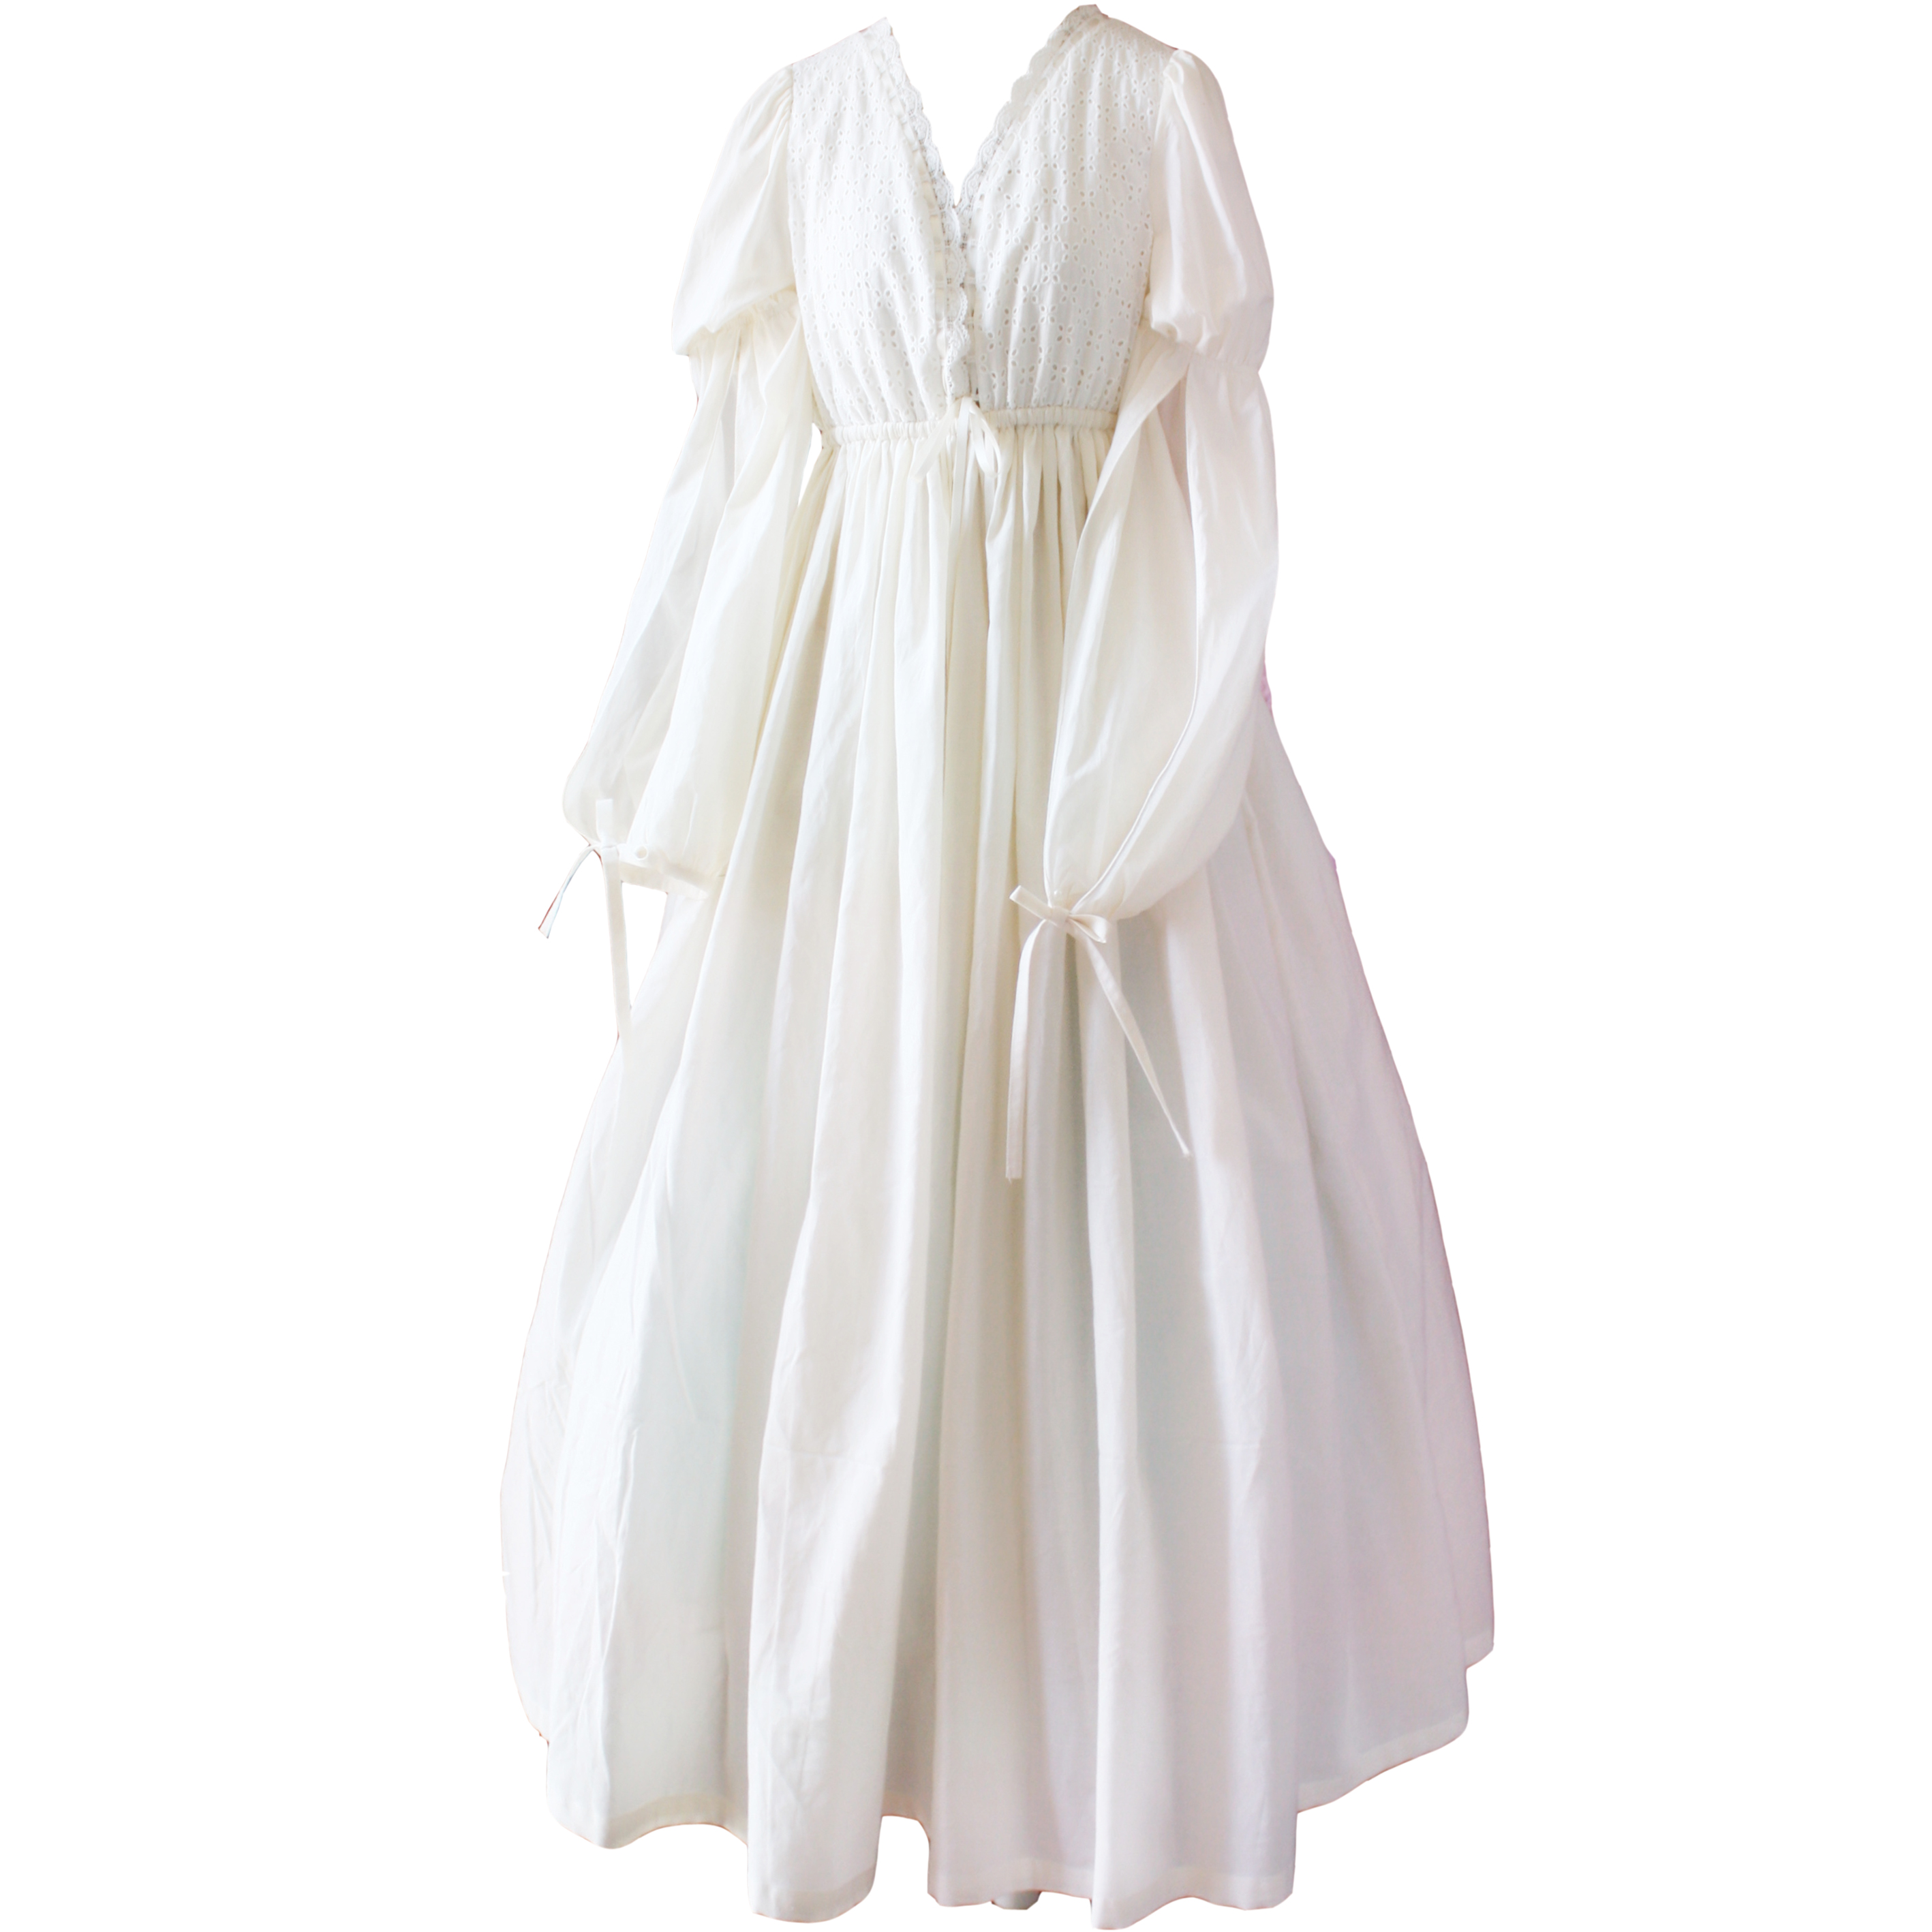 Vintage <font><b>Sexy</b></font> Sleepwear Women Cotton Medieval Nightgown White V-neck Queen <font><b>Dress</b></font> <font><b>Night</b></font> <font><b>Dress</b></font> Lolita Princess Home <font><b>Dress</b></font> image